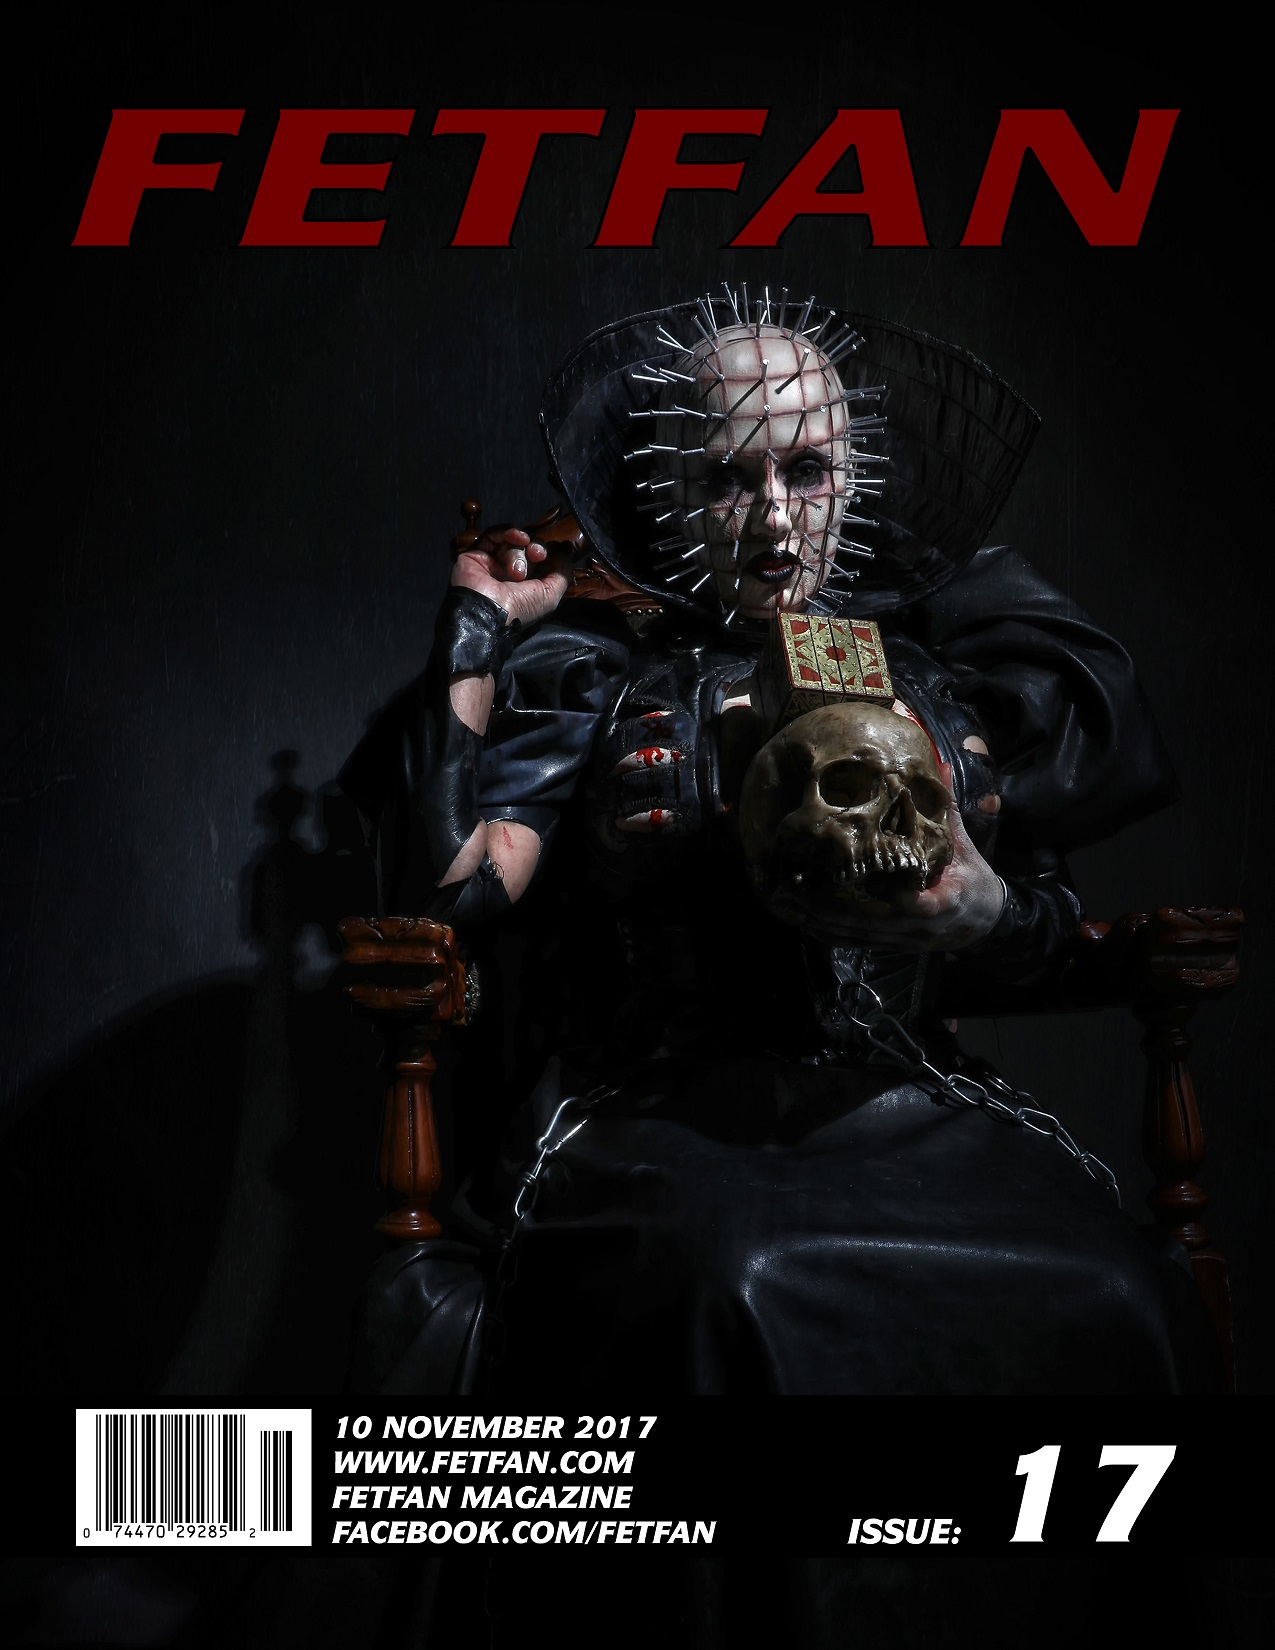 FETFAN Magazine Issue: 17